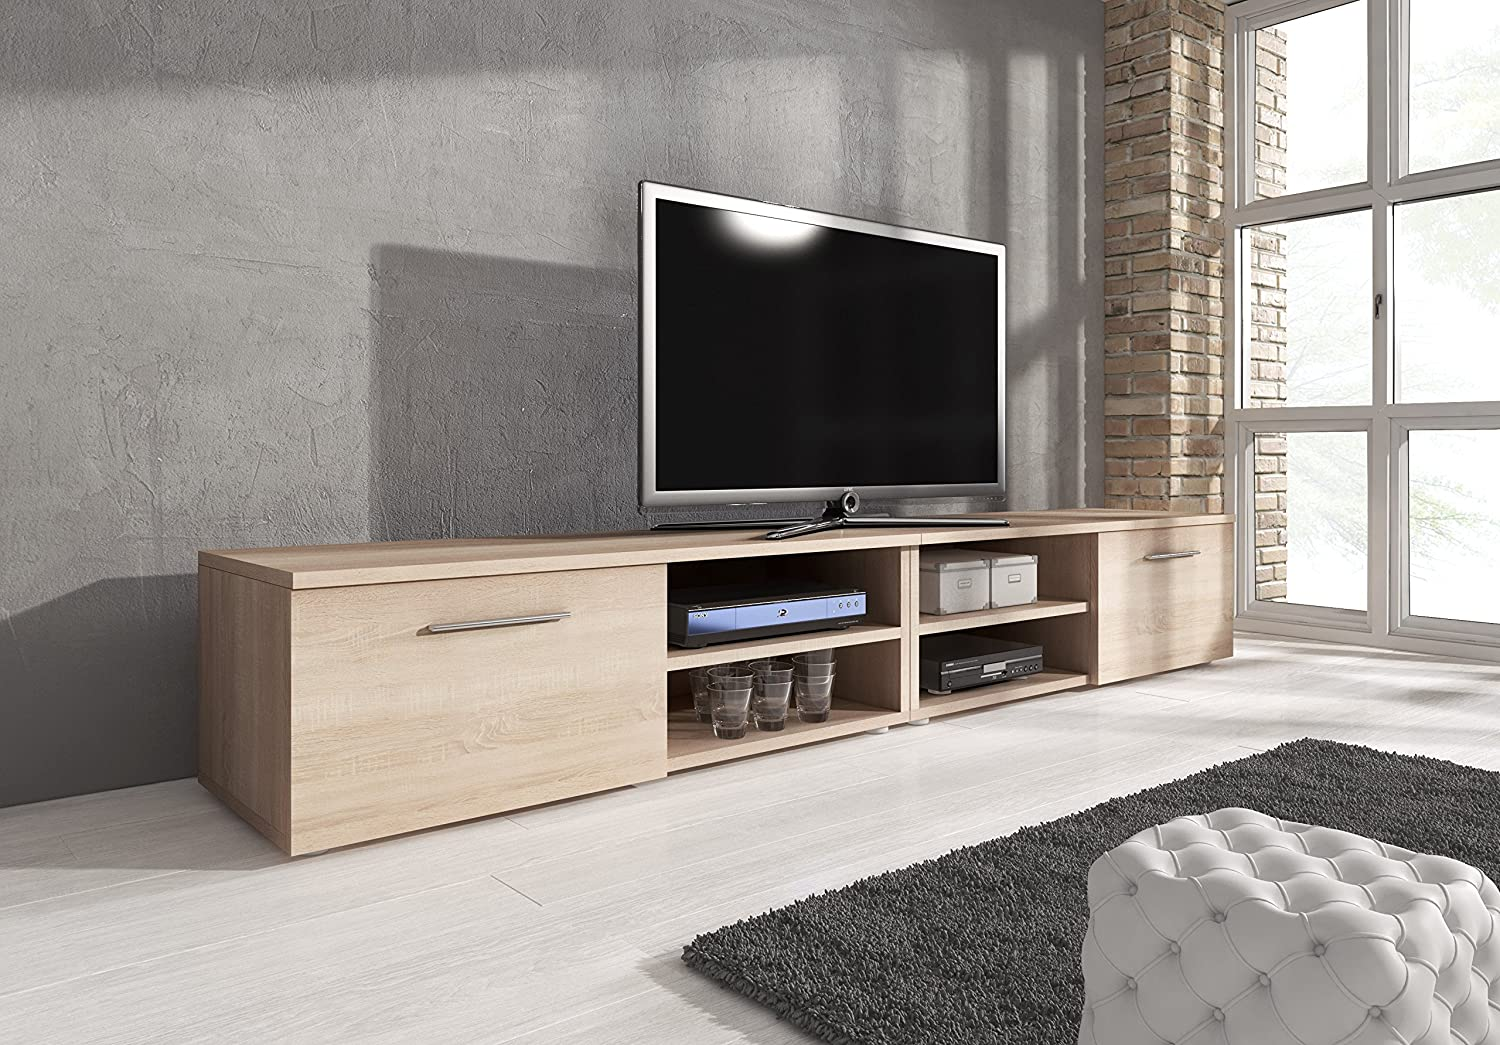 tv schrank eiche latest tv schrank eiche with tv schrank. Black Bedroom Furniture Sets. Home Design Ideas